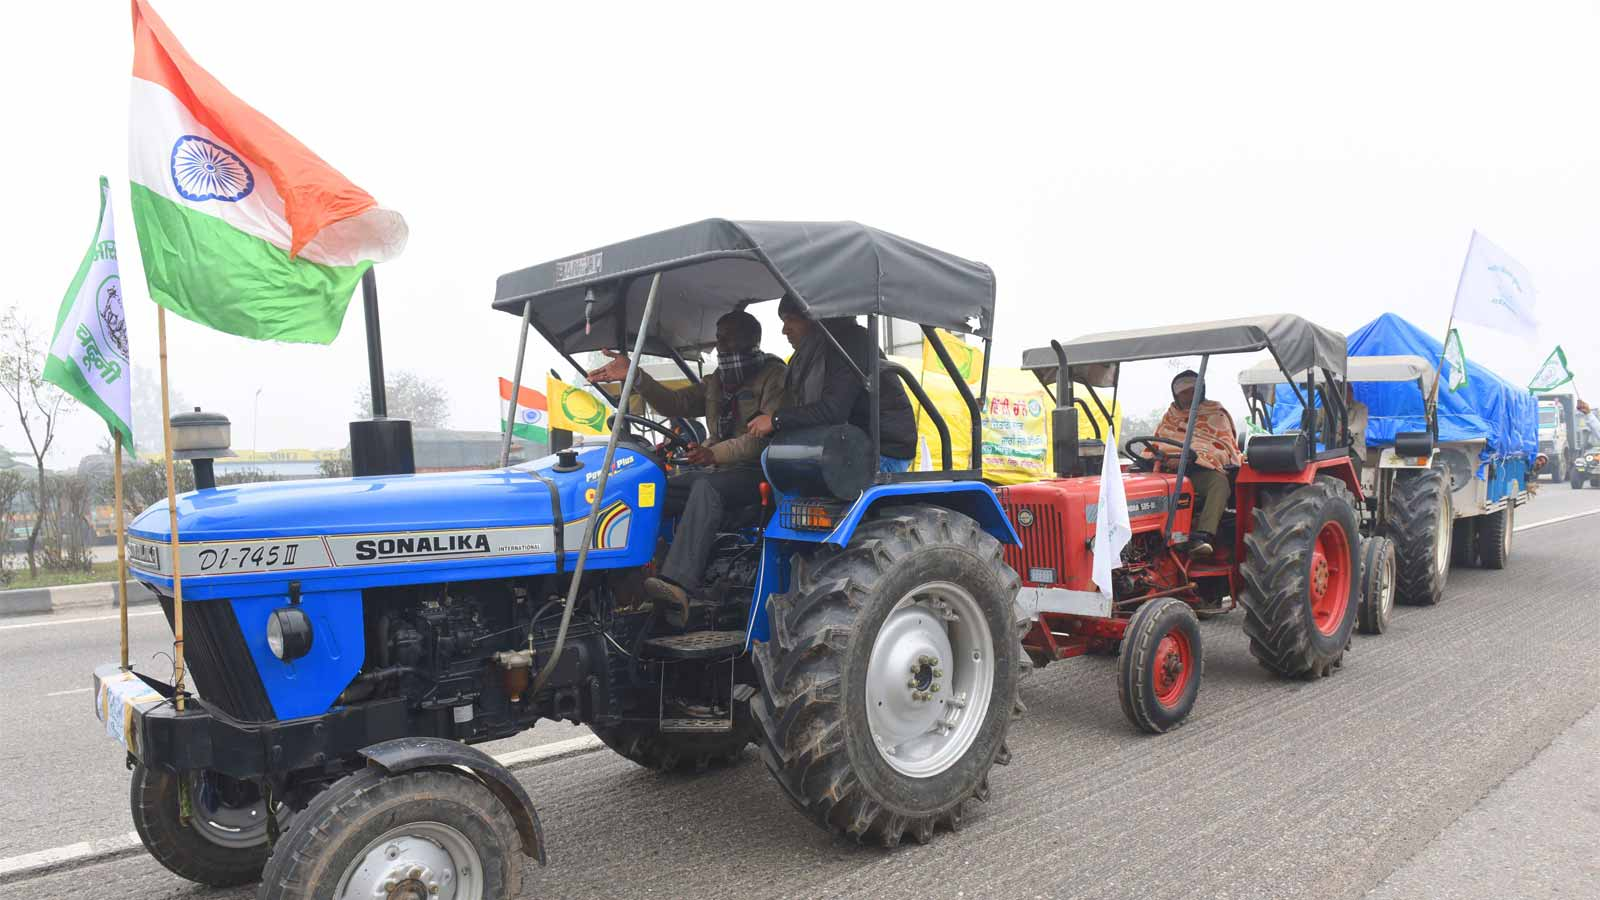 tractor-rally-on-r-day-farmers-unions-issue-dos-and-donts-vow-to-make-it-completely-peaceful